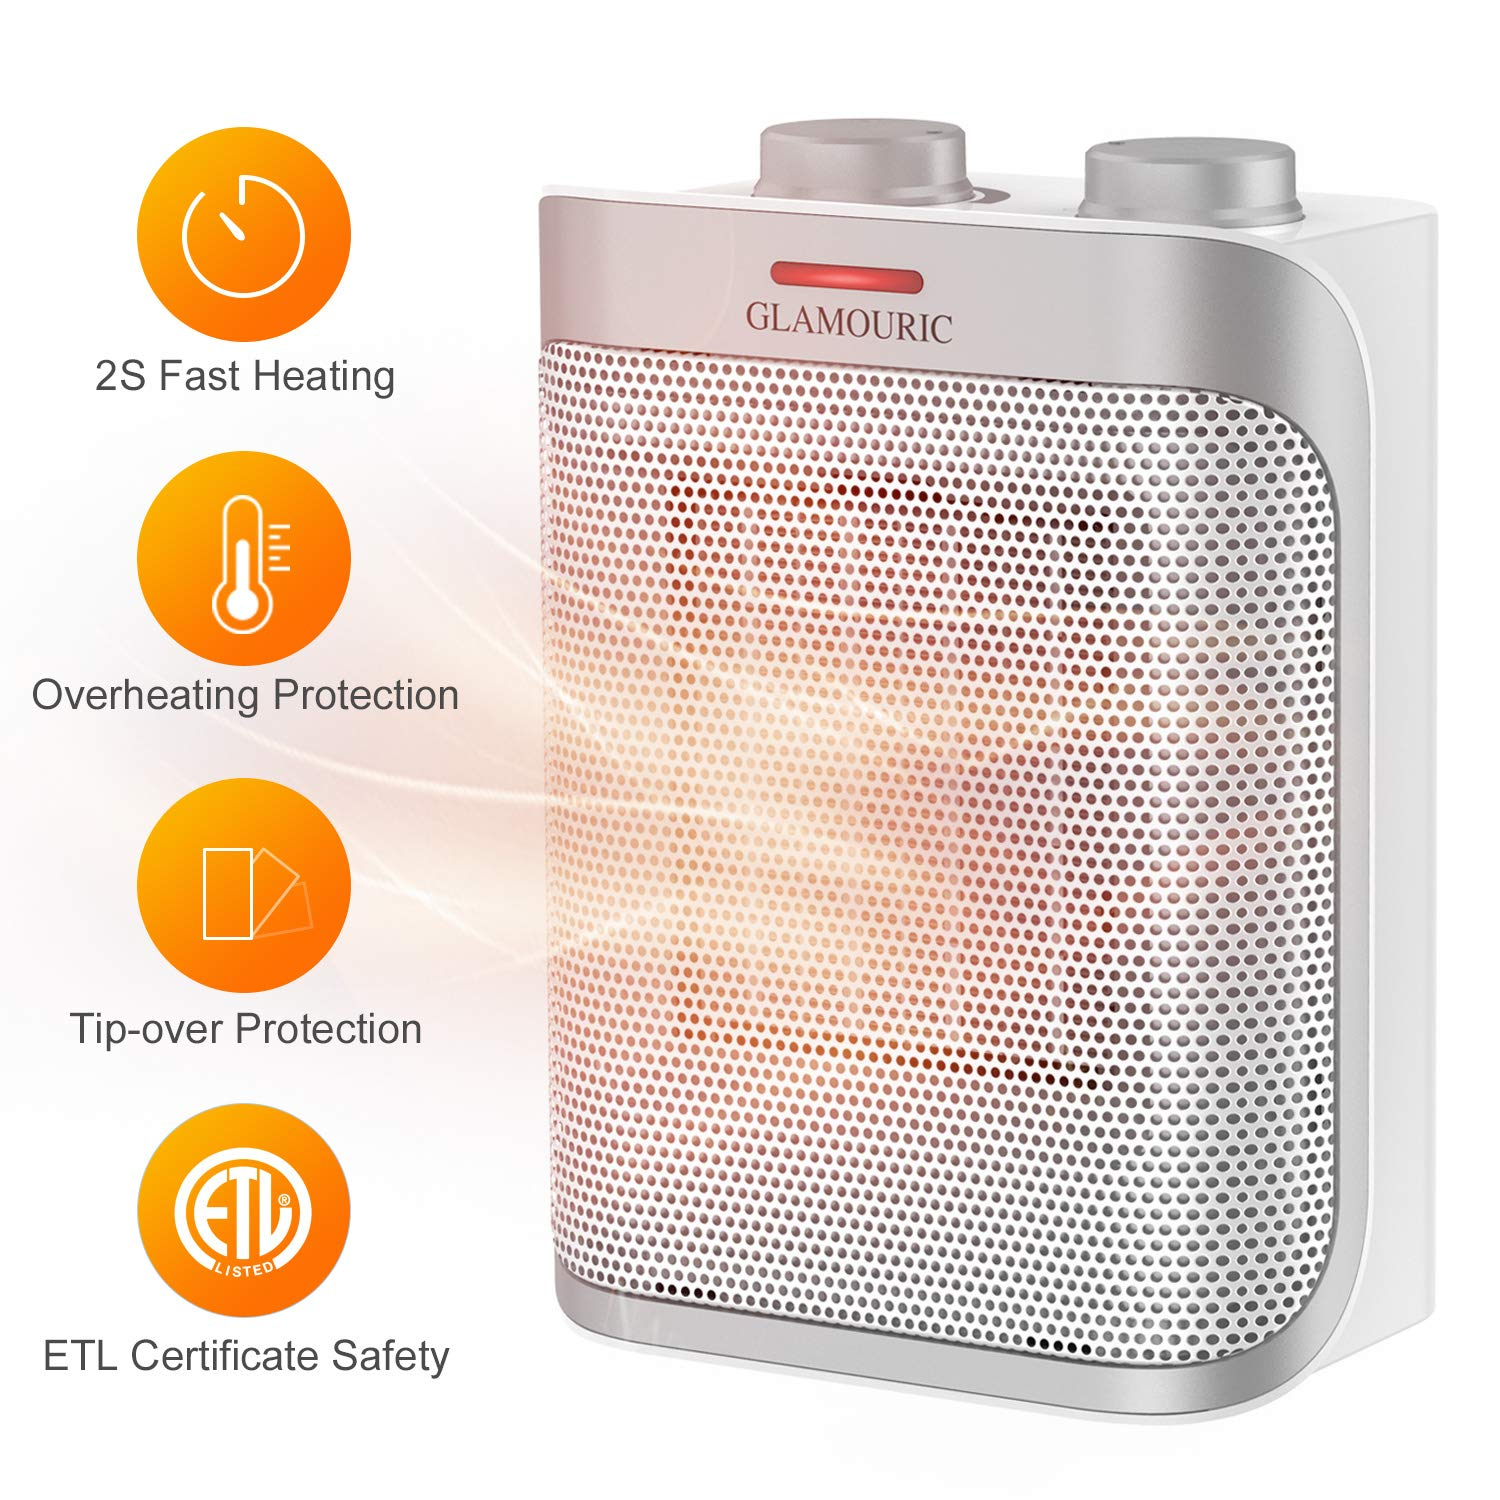 GLAMOURIC Ceramic Space Heater with 1500W ETL Listed Hot Cool PTC Heater White , Overheat Protection